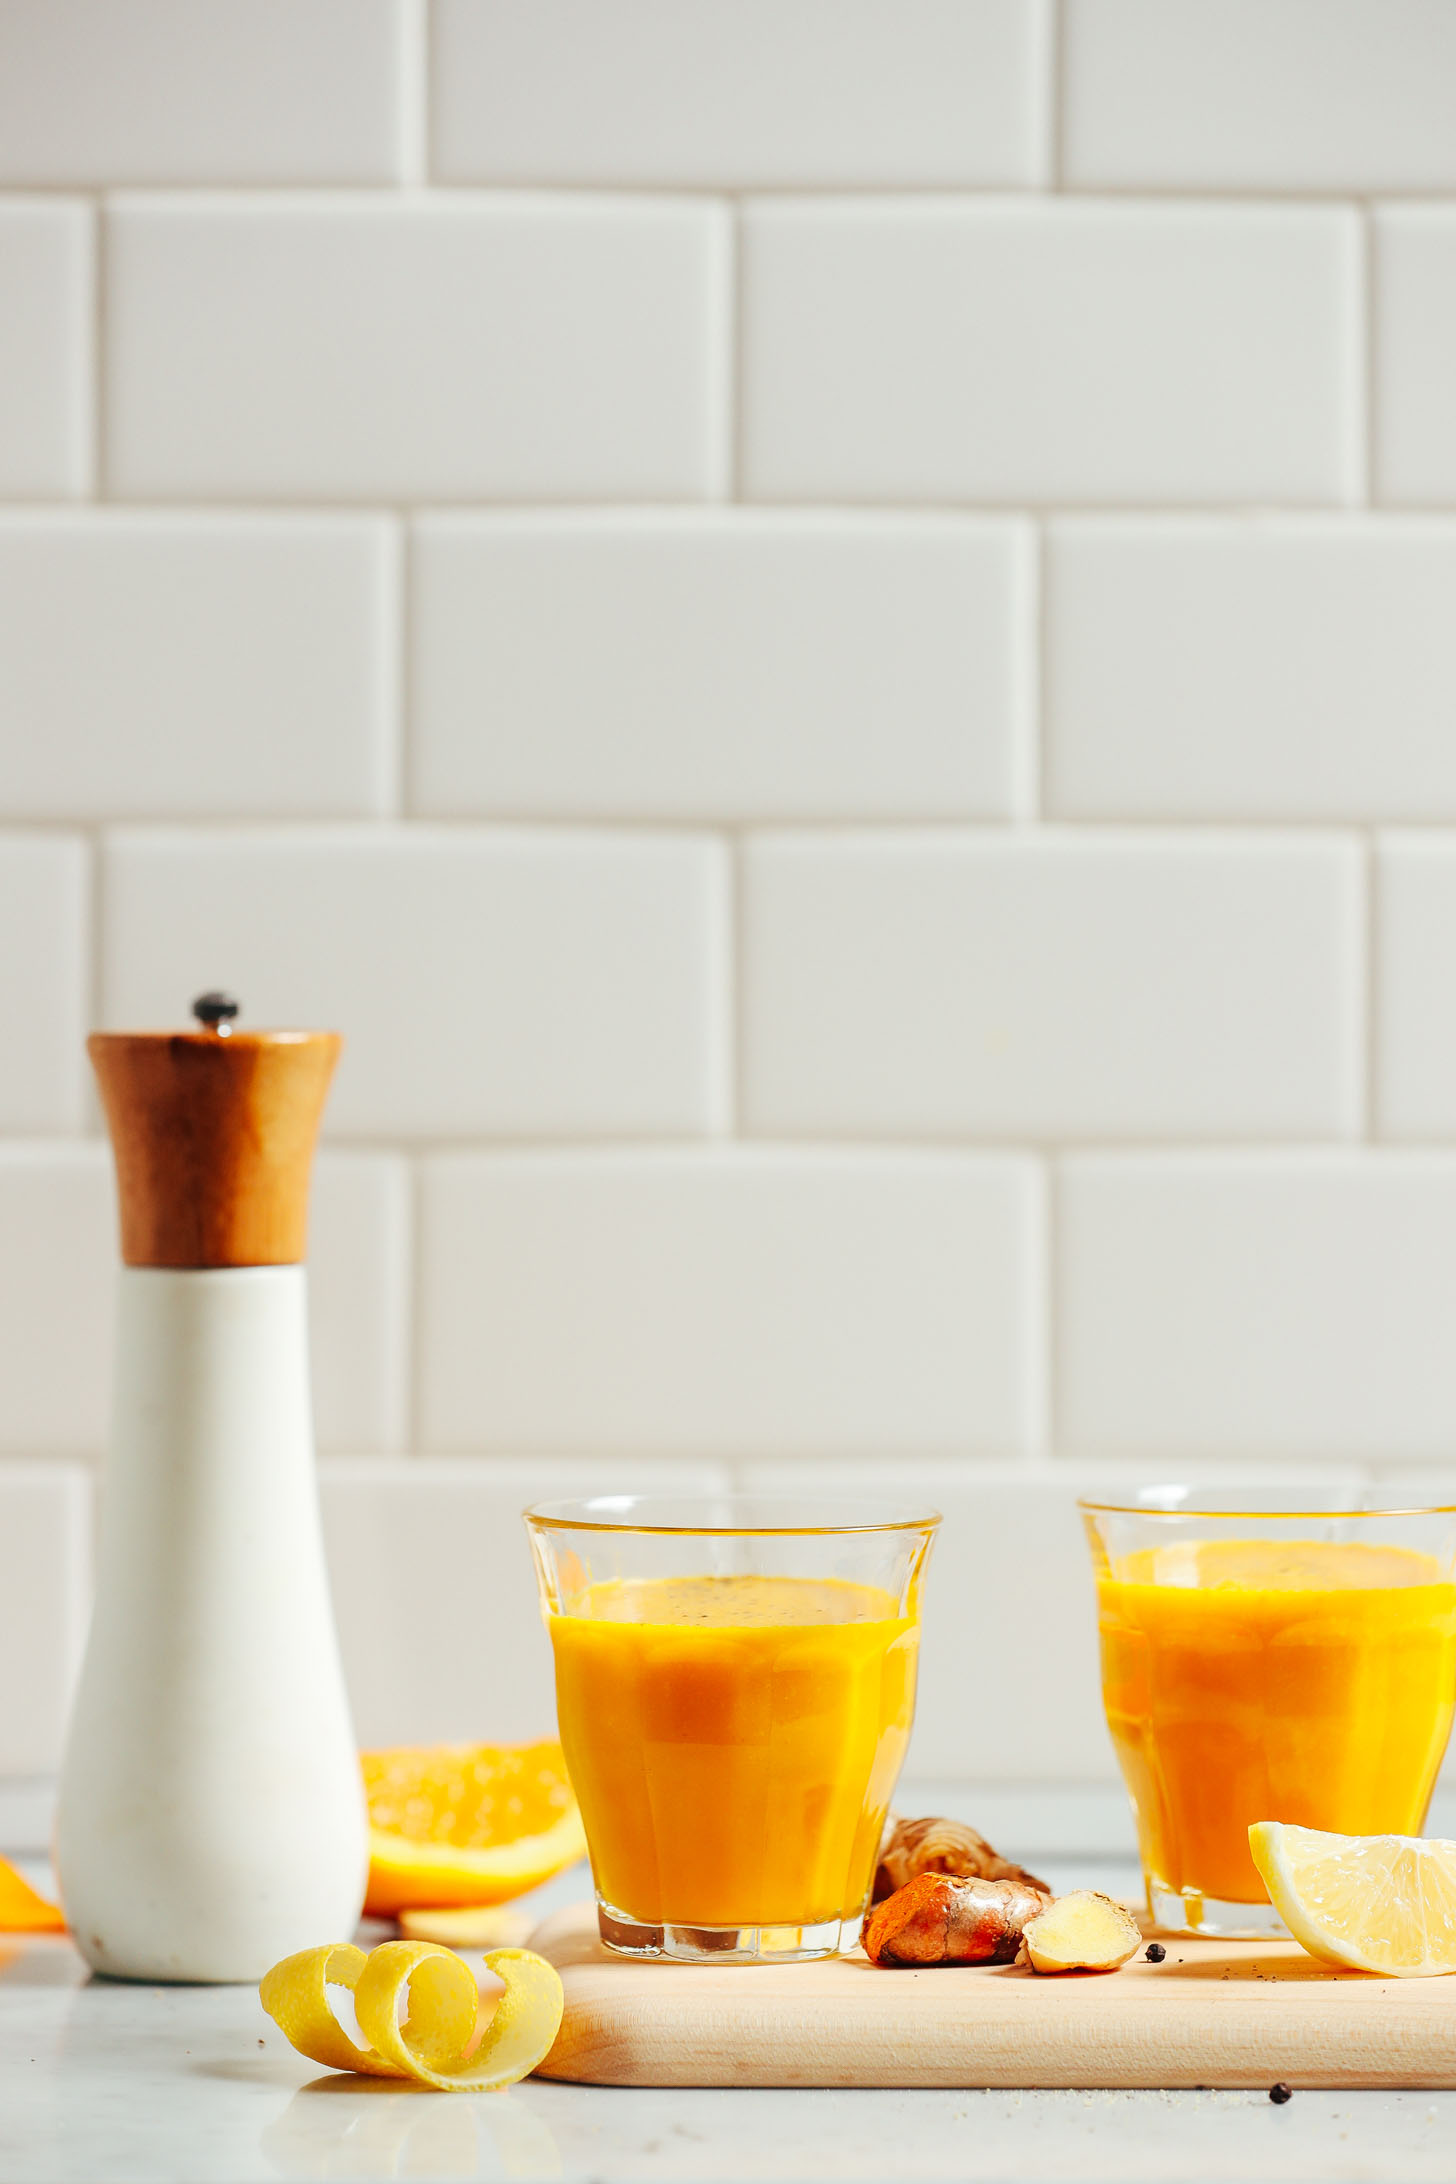 Two glasses of Turmeric Wellness Shots for an anti-inflammatory homemade juice